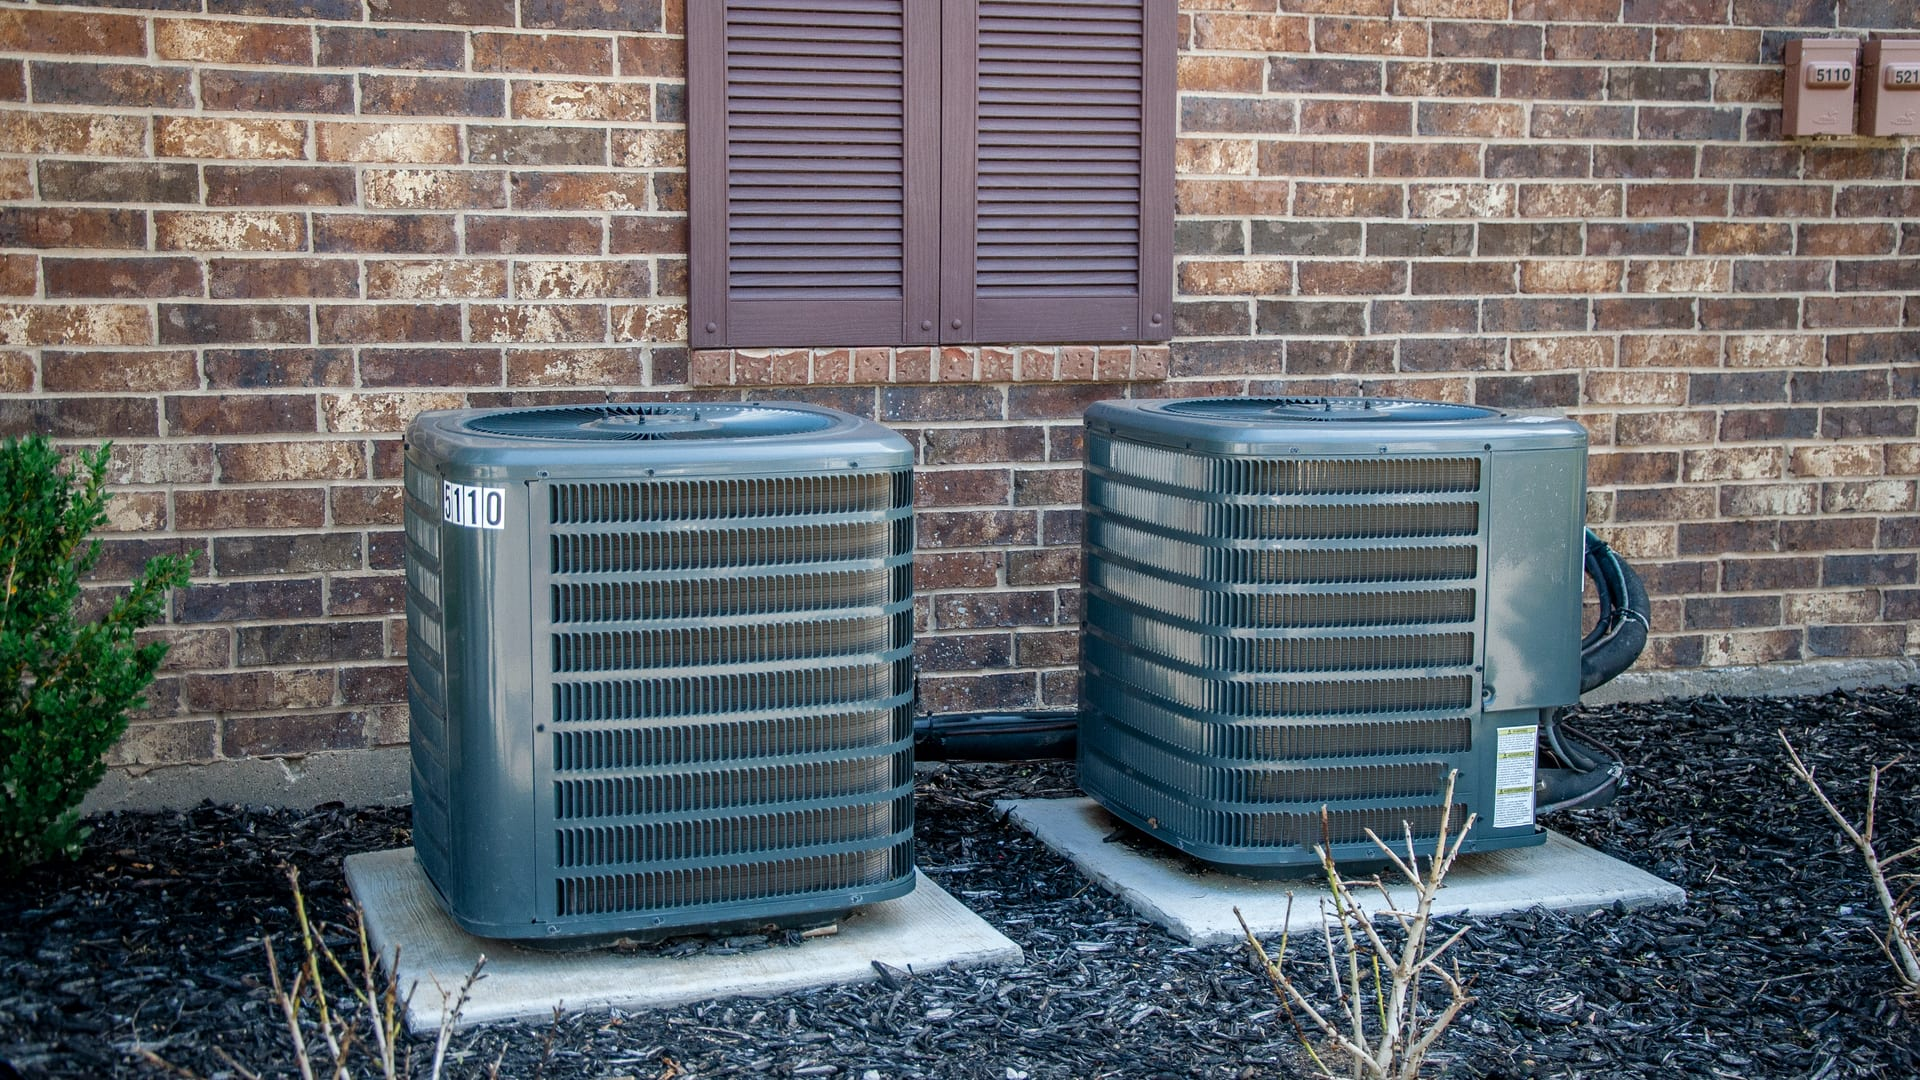 A split type HVAC system outside of a building.